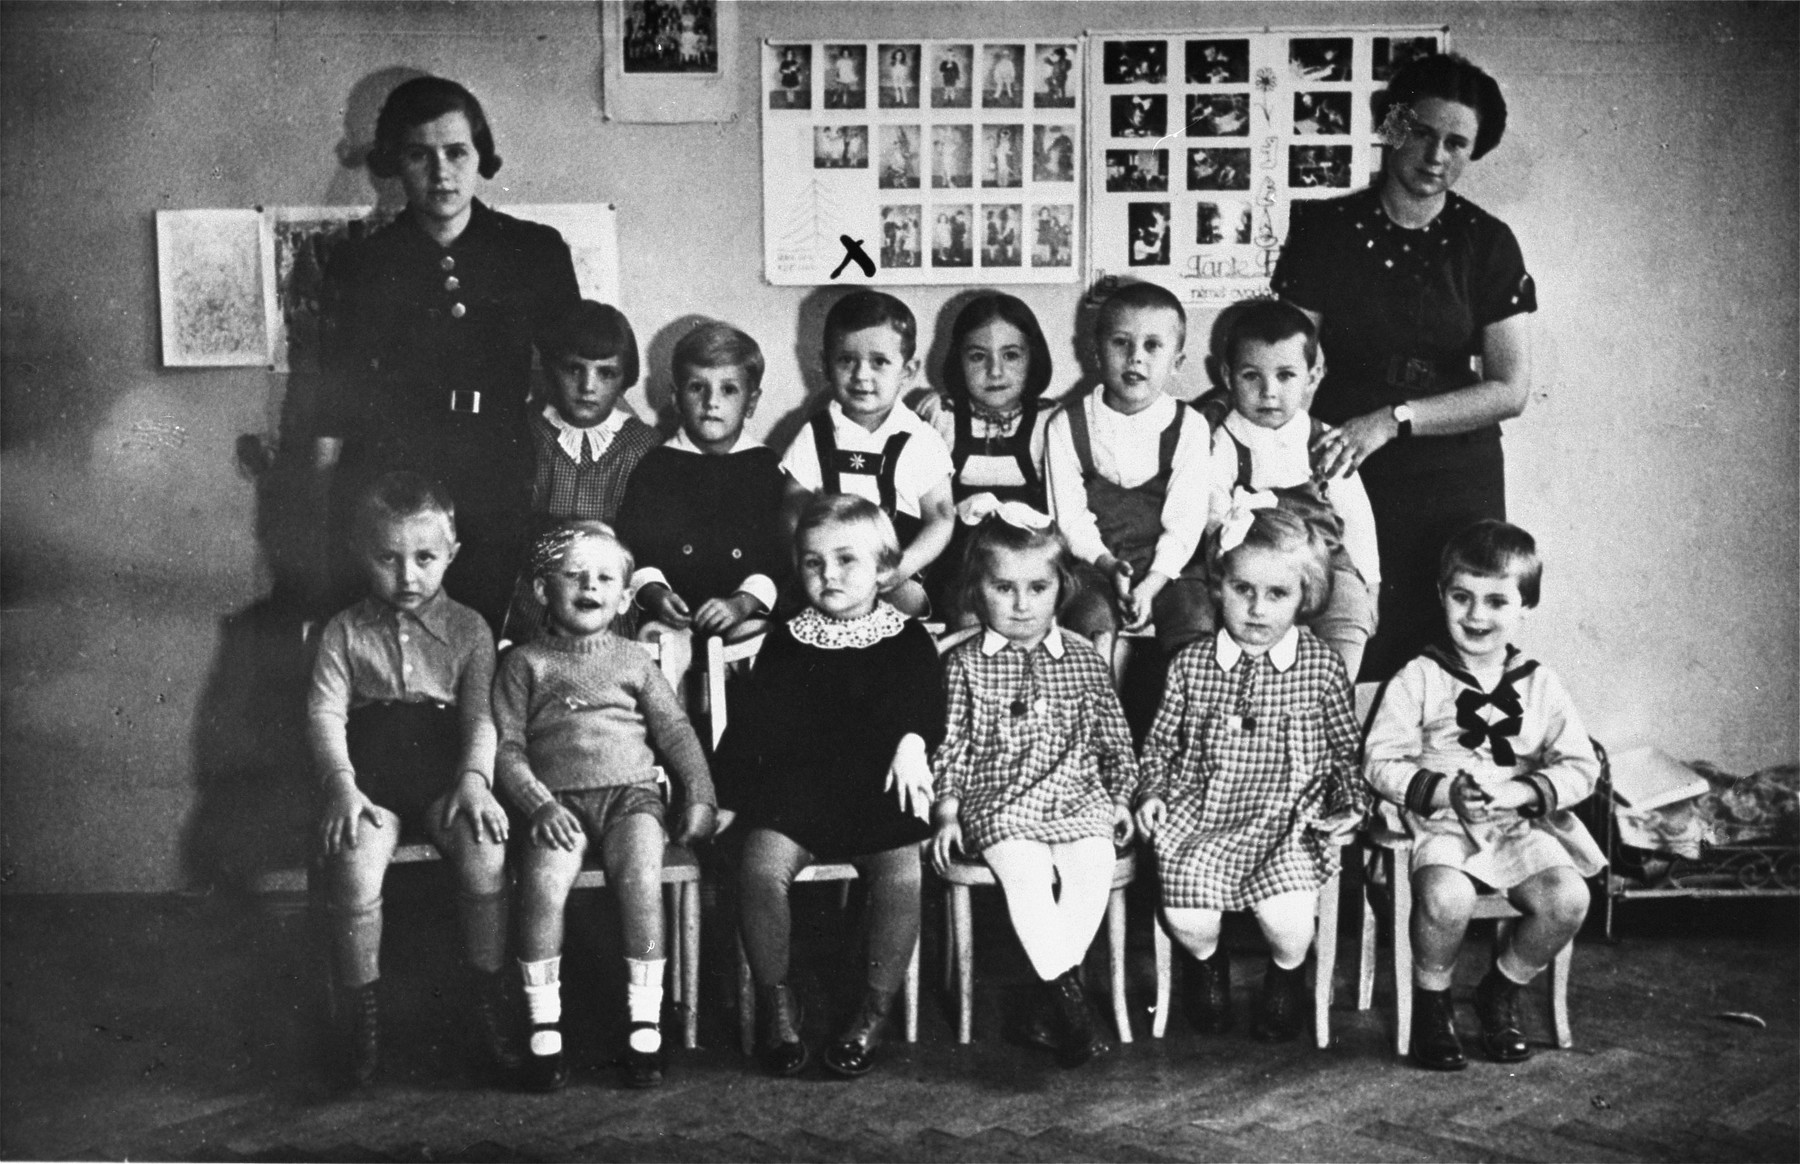 Group portrait of a kindergarten class at a Jewish school in Budapest.  Among those pictured is Otto Friedman, the cousin of Marta Elkana (back row, fourth child from the right).